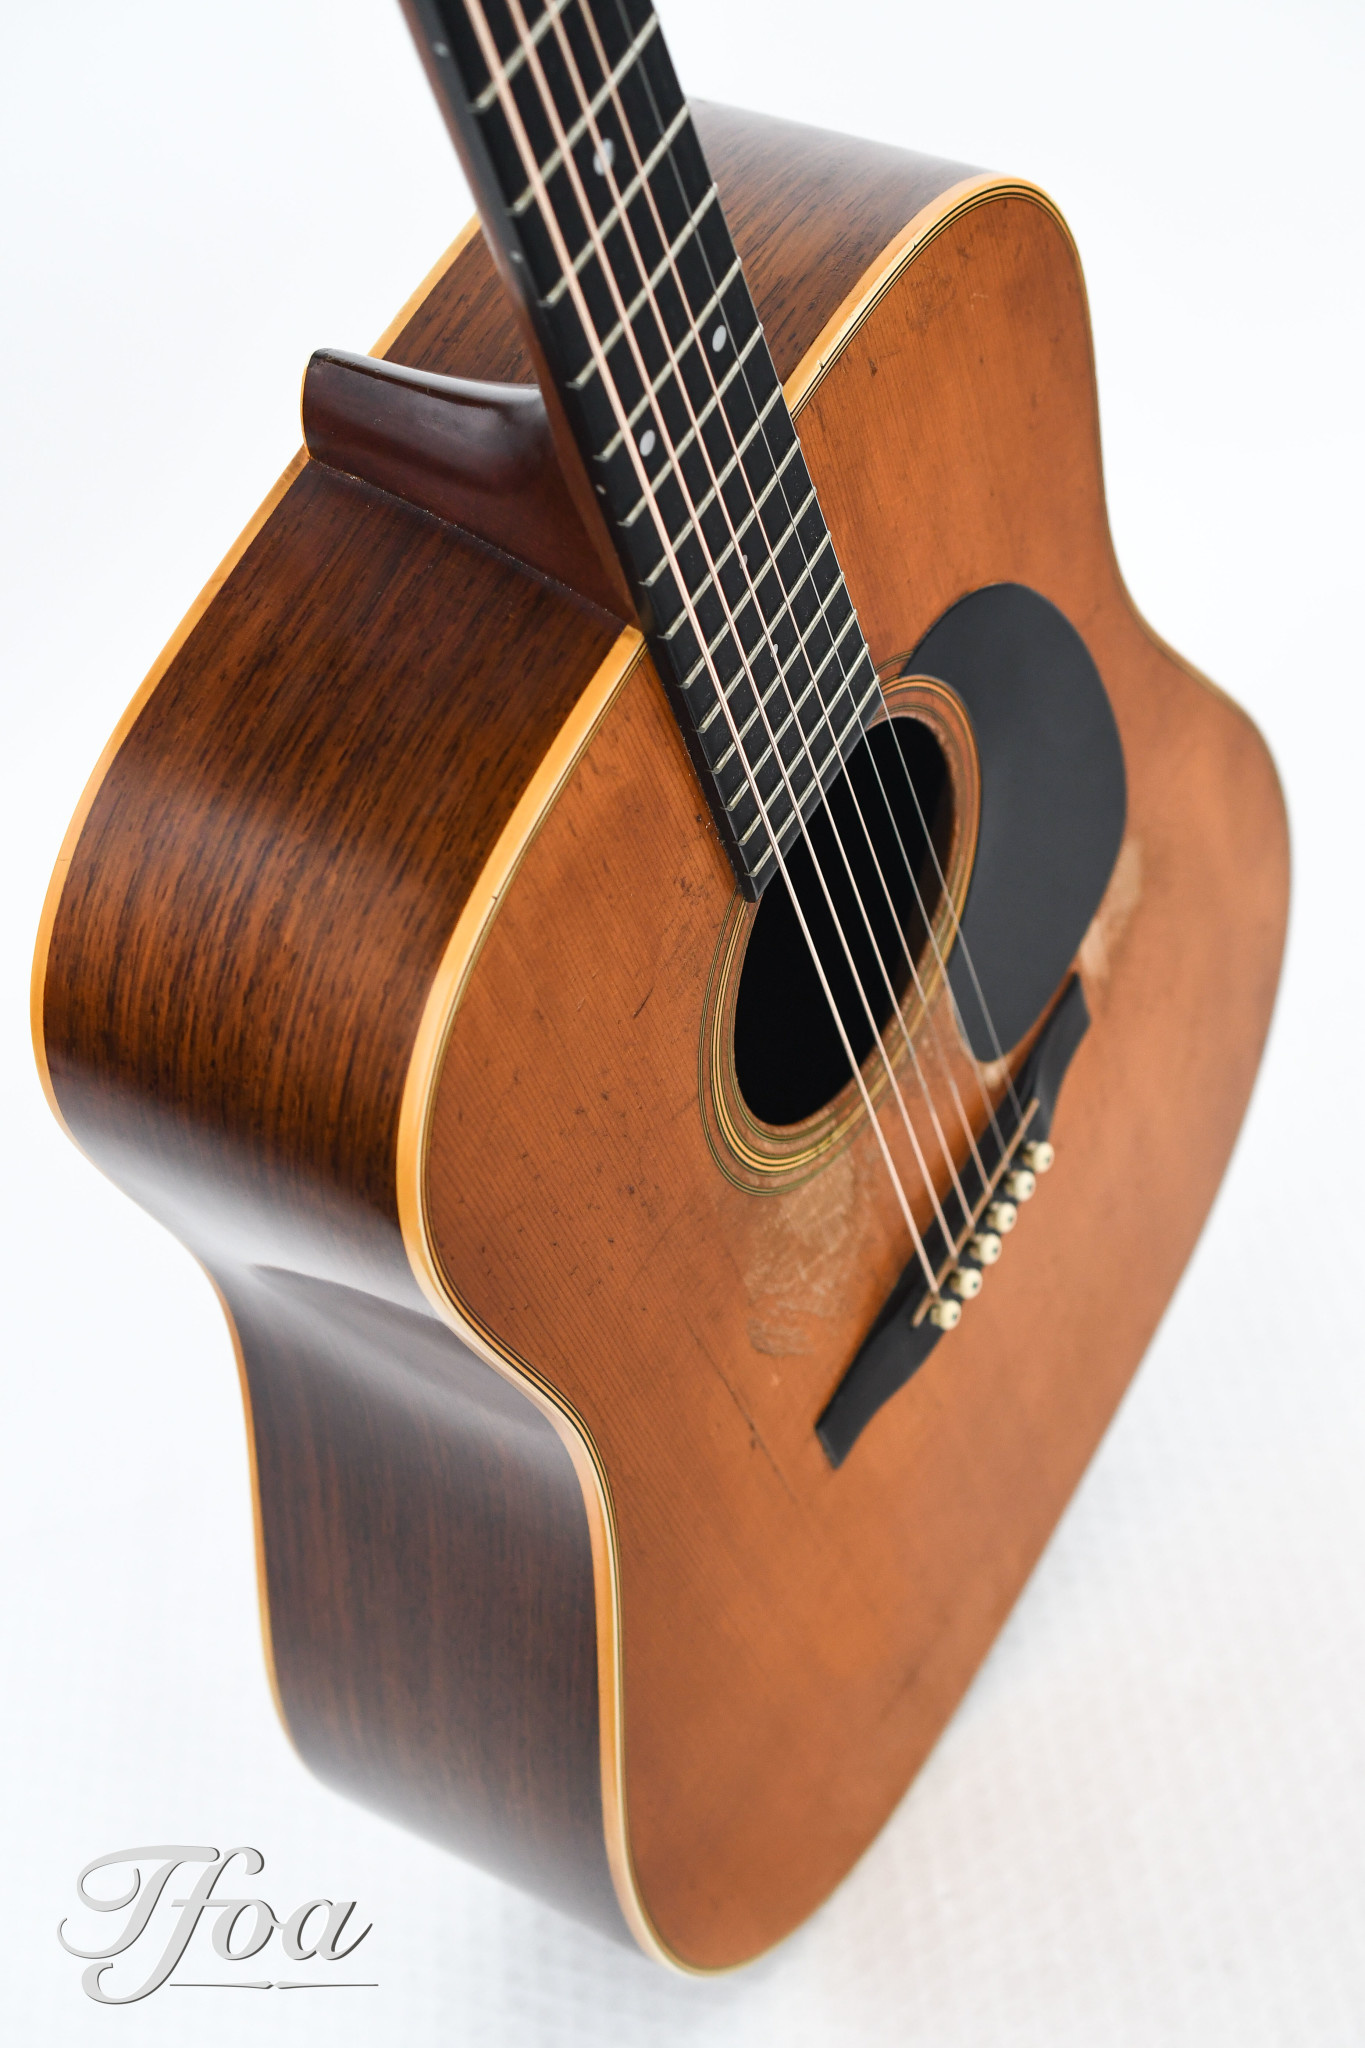 Martin D28 Sold As Is 1967 Guitar For Sale The Fellowship Of